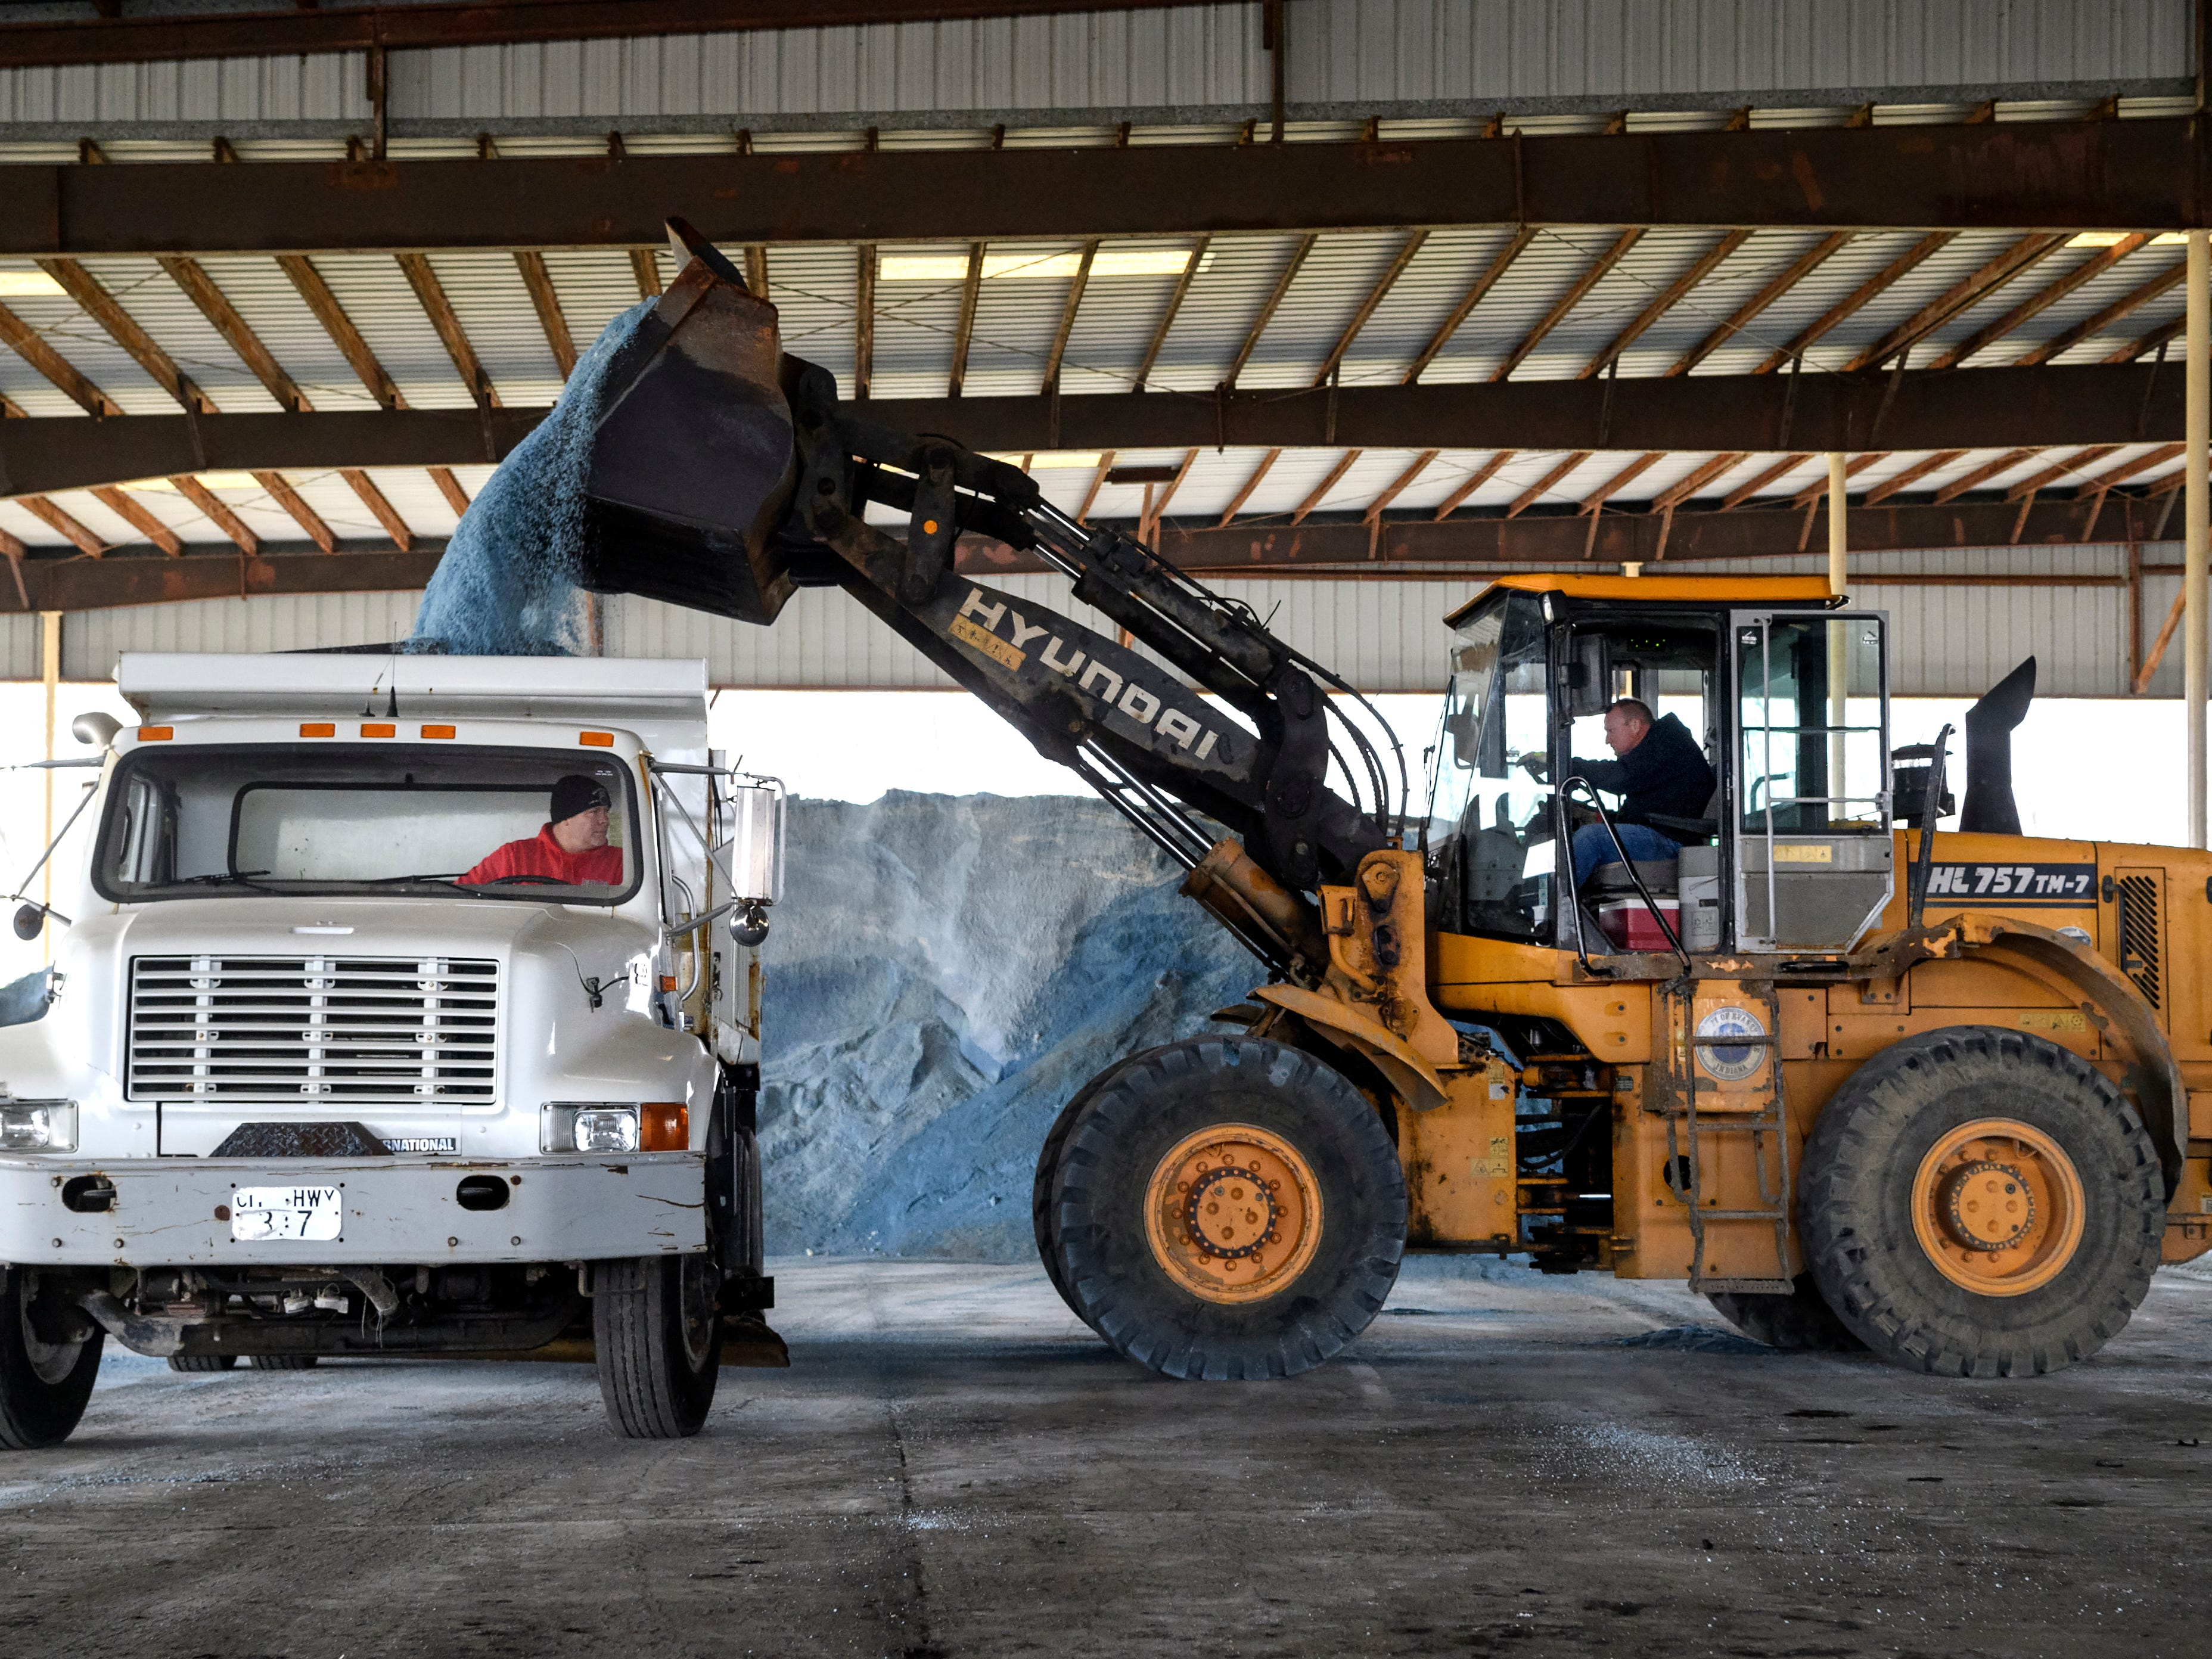 Brad Haller, right, an operator for the City of Evansville's Street Maintenance department, dumps salt into his co-worker Jody Goodwin's truck at the salt barn located in the East Waste Water Treatment plant in Evansville, Ind., Friday, Jan. 11, 2019. The city scheduled for twelve trucks to start treating roads at 6 p.m. Friday, when a Winter Storm warning issued by the National Weather Service went into effect.